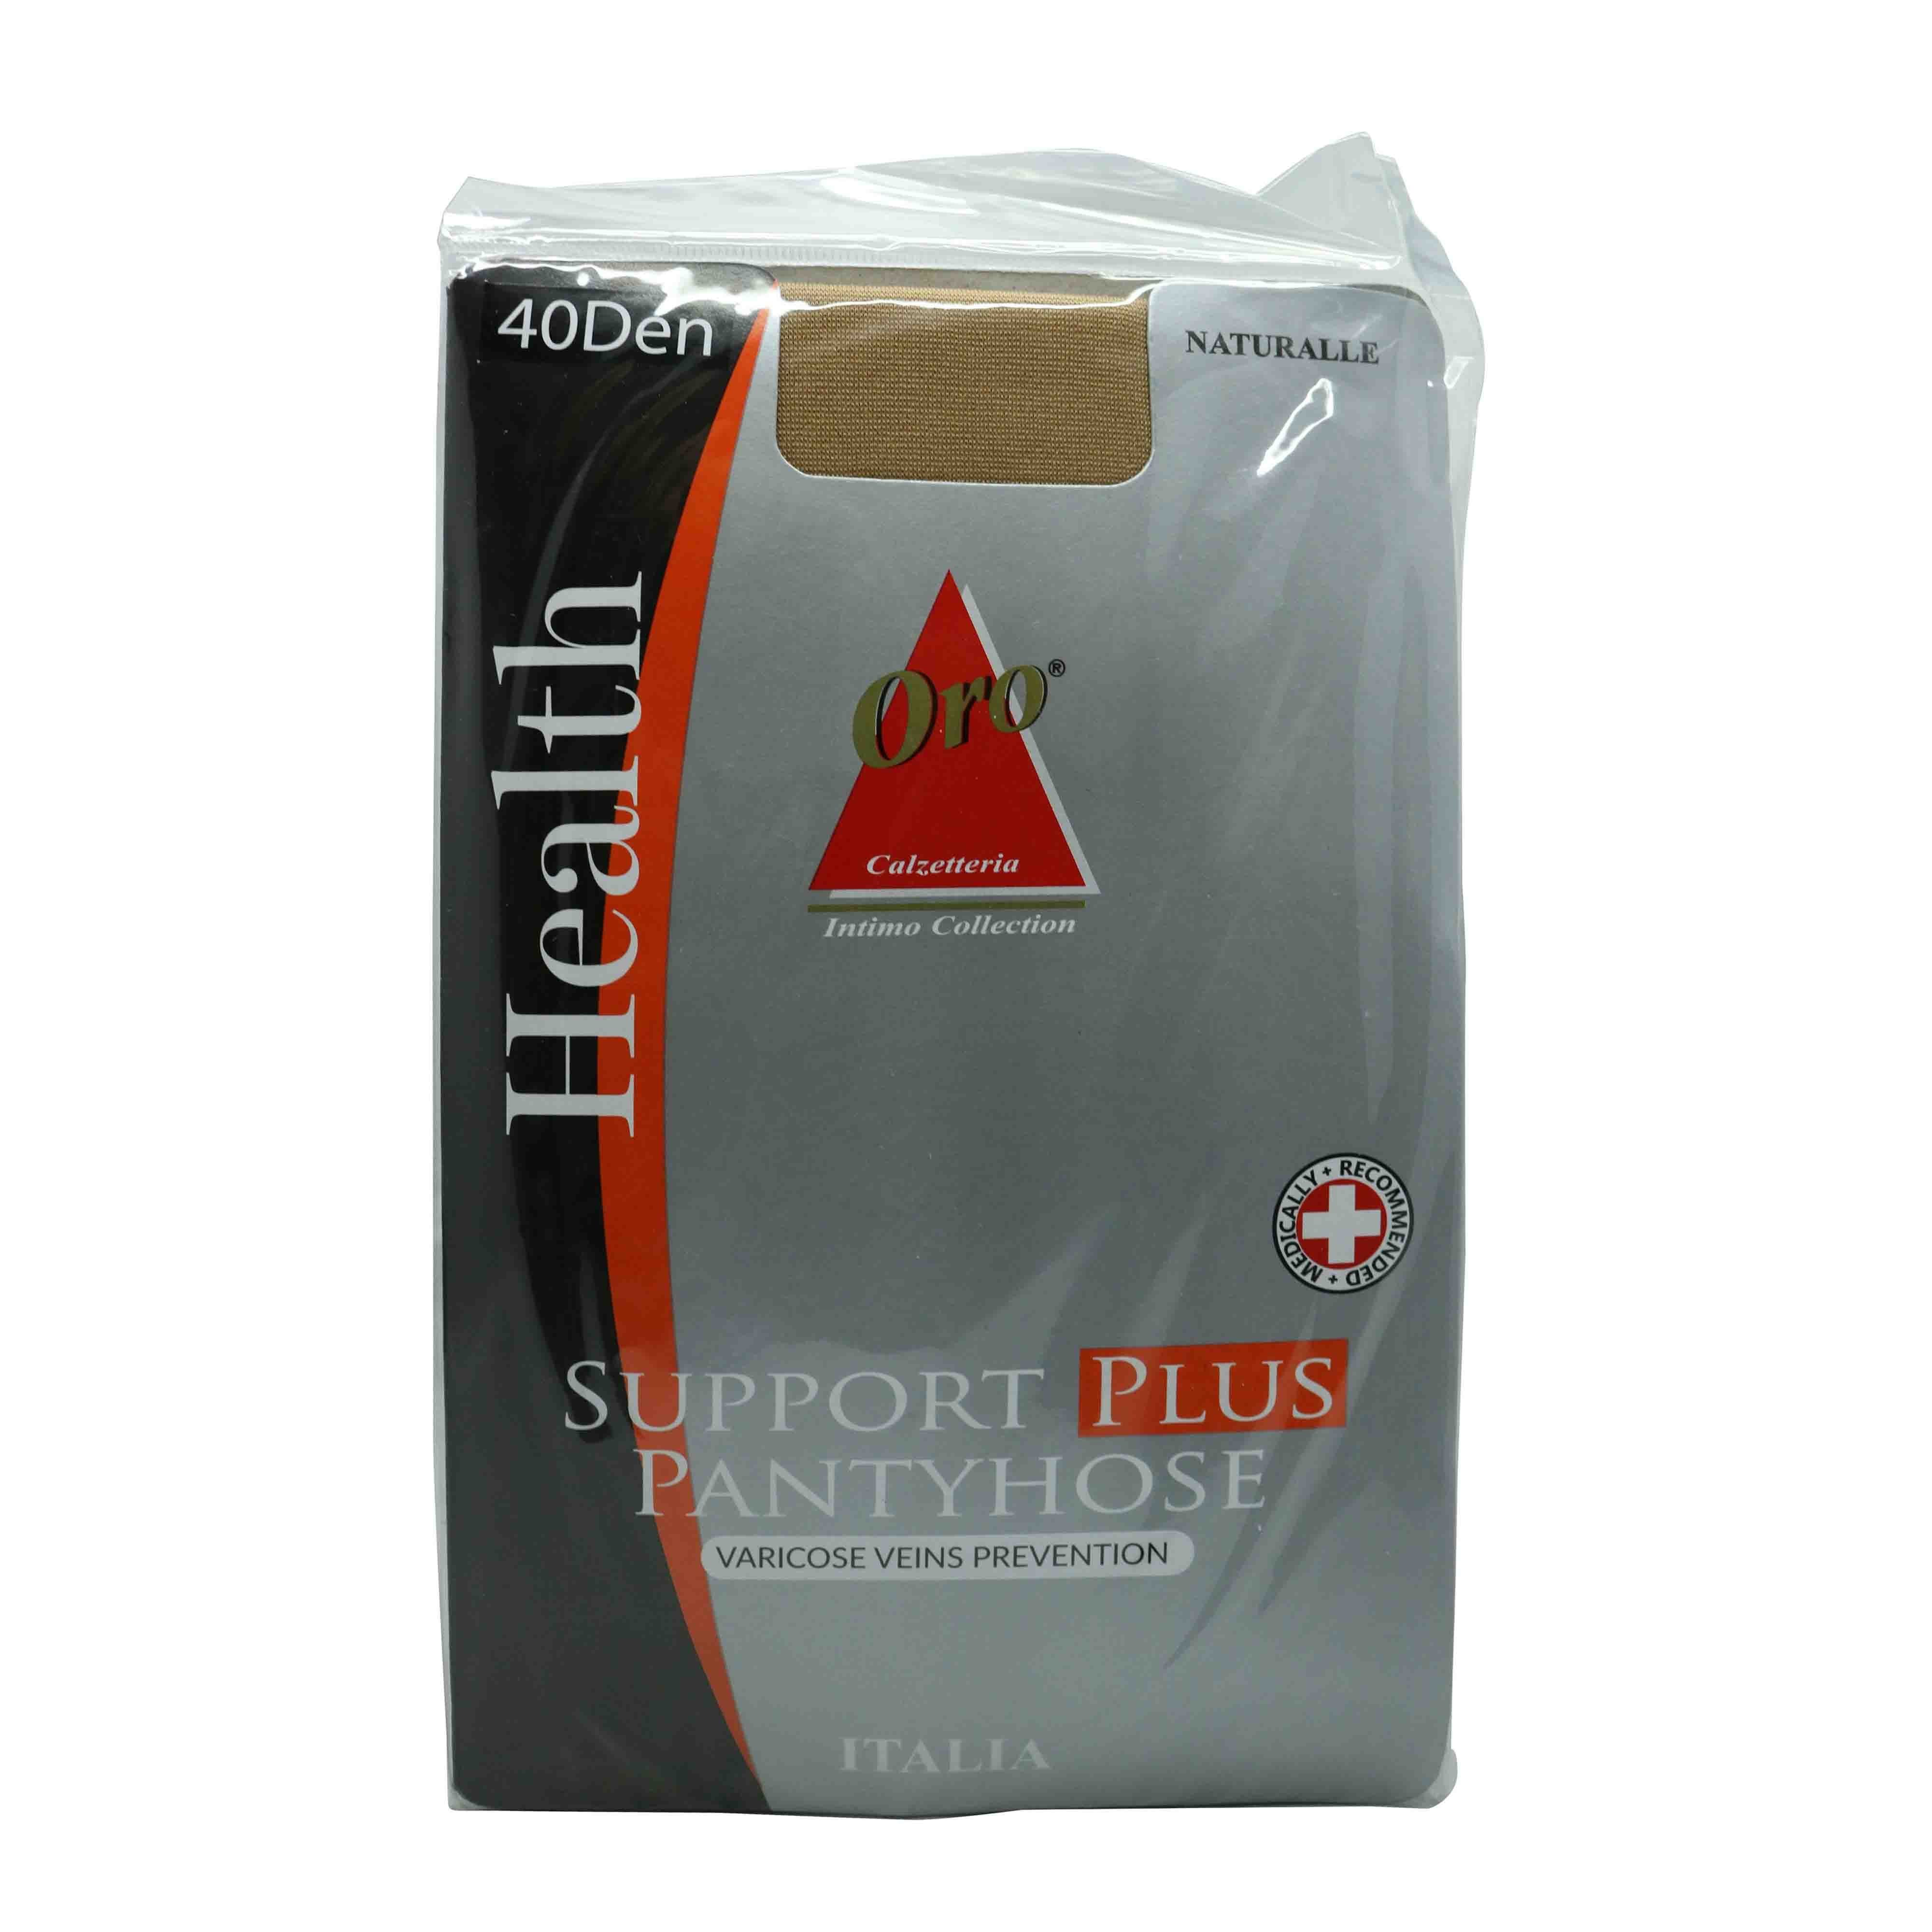 ORO INTIMOSupport Plus Pantyhose Naturalle,Home EssentialsWATSONS EMP. DISC.